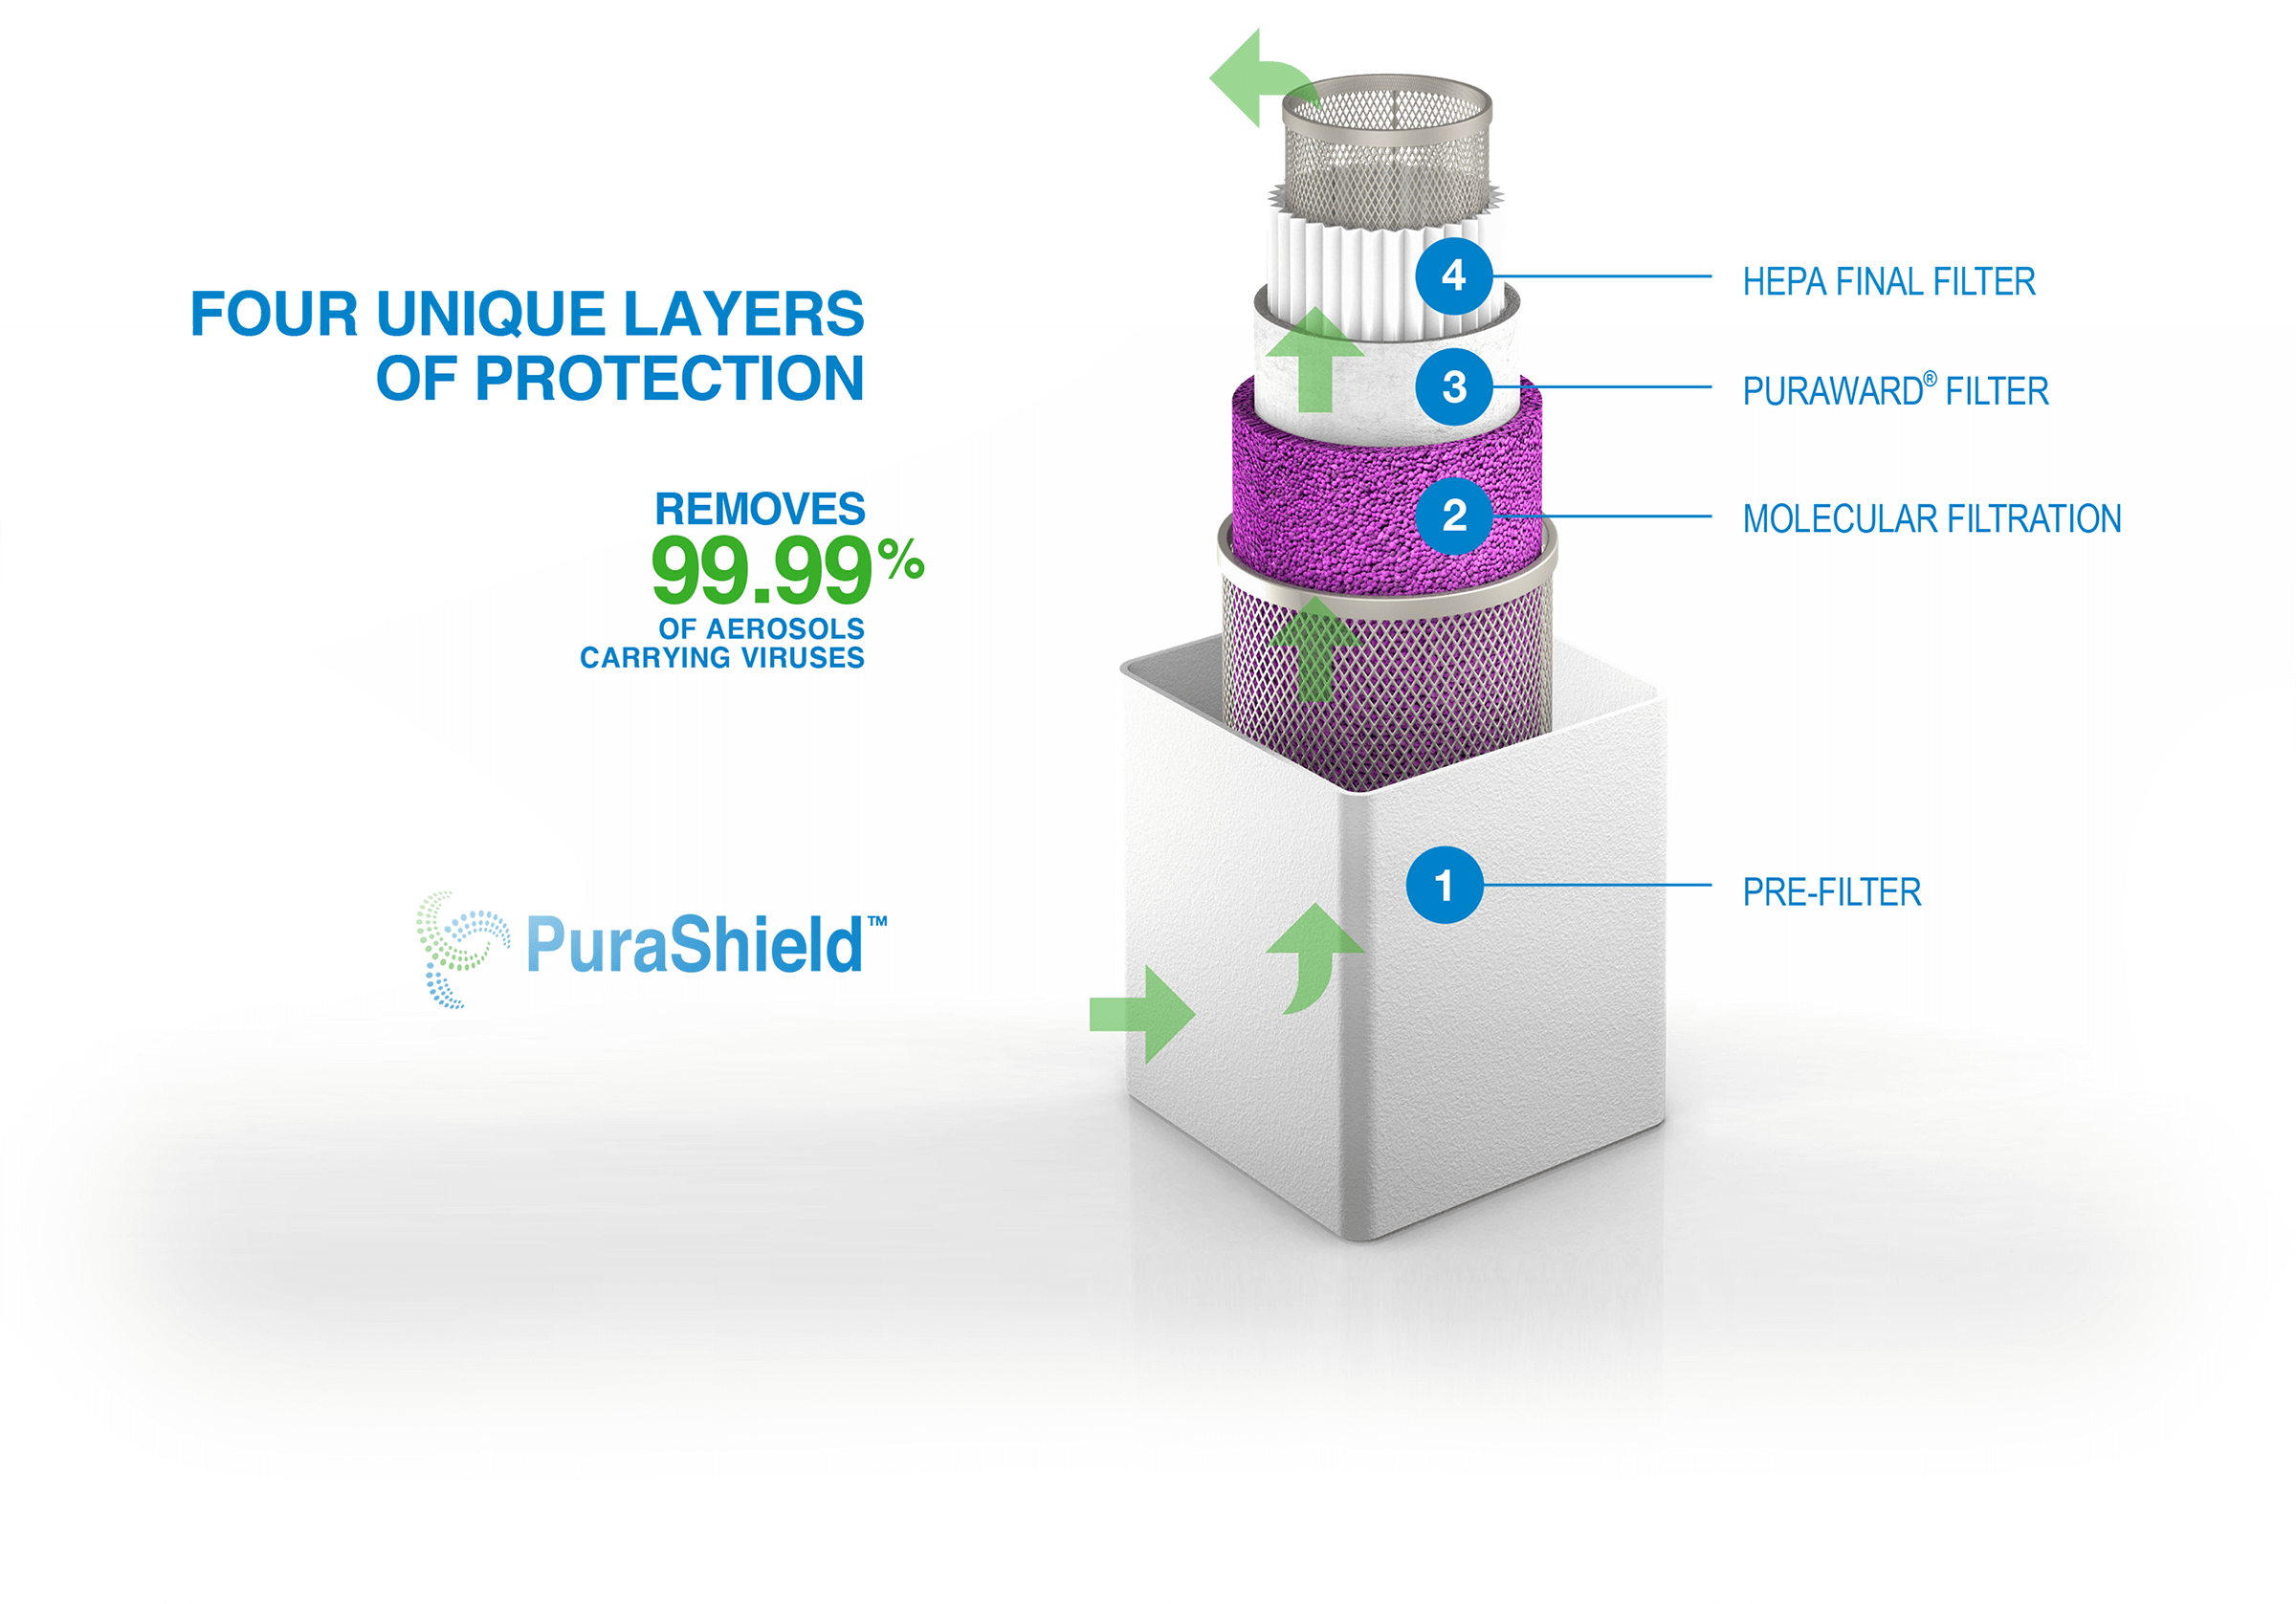 Cutaway view of PuraShield Air Purifier with 4 layers of protection